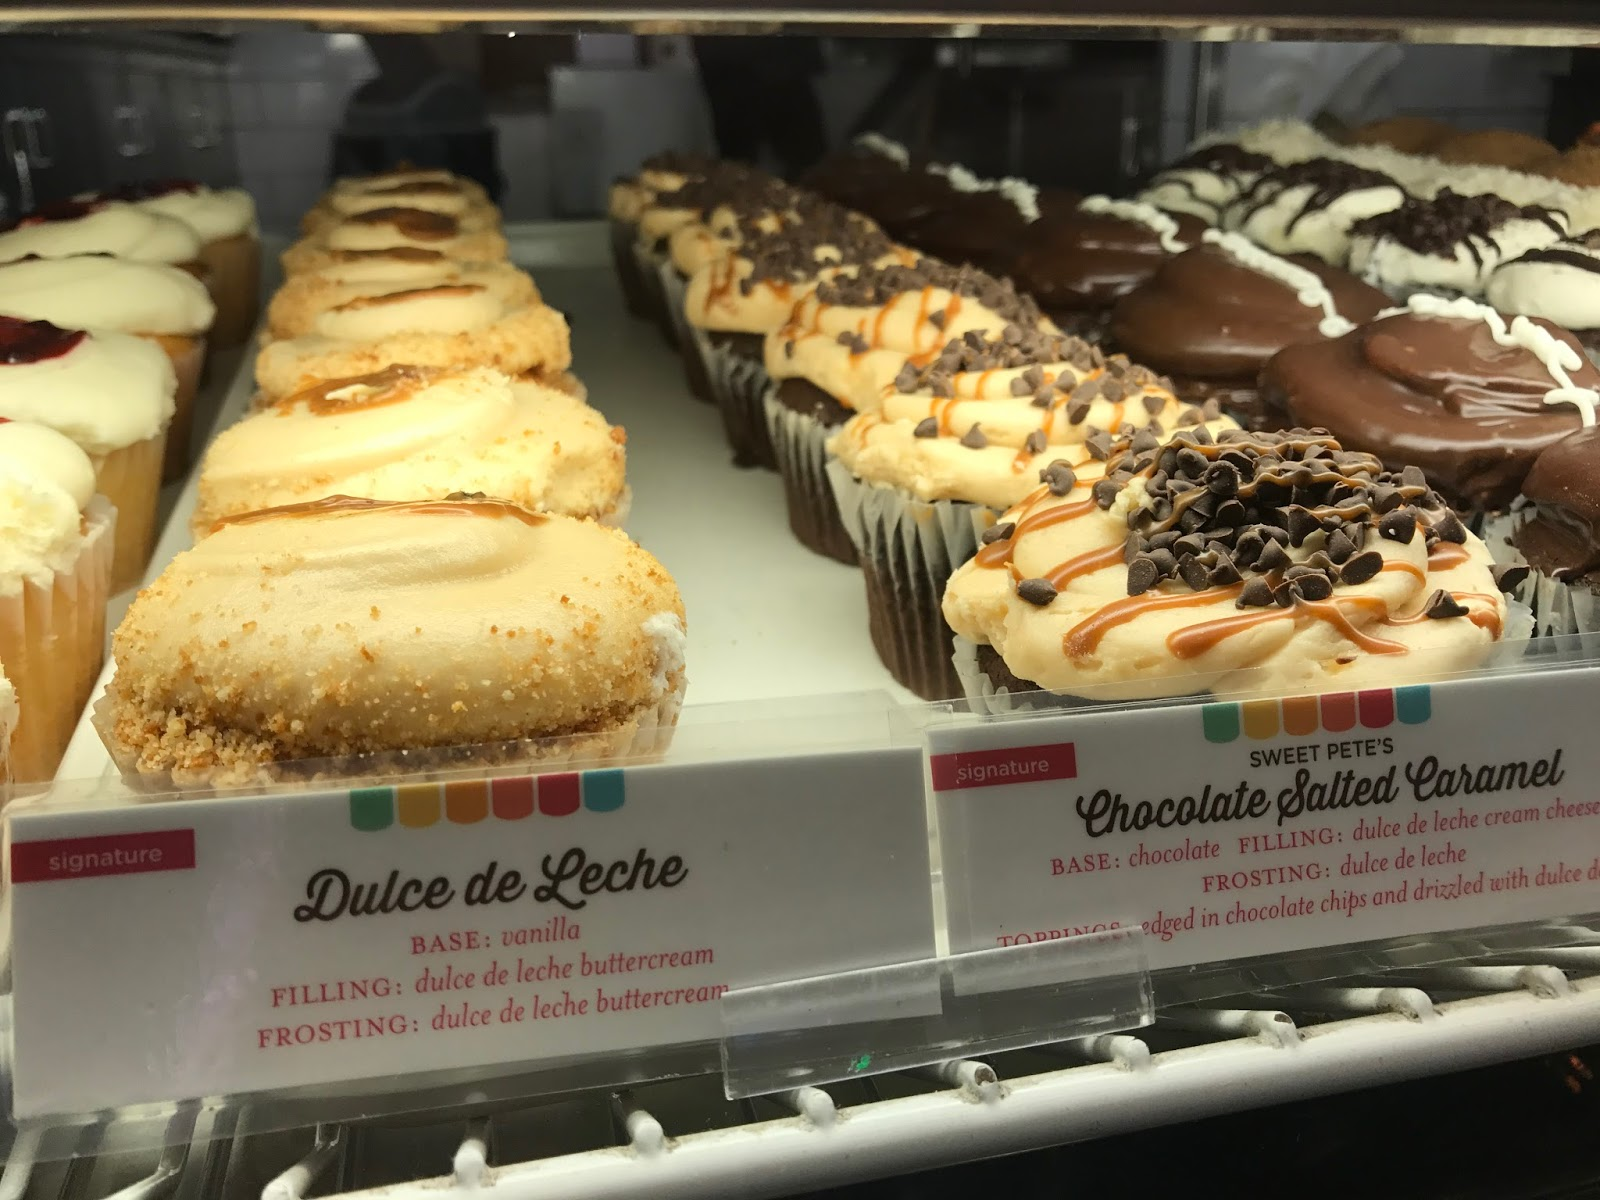 the pastry chefs baking nyc bakery review crumbs bake